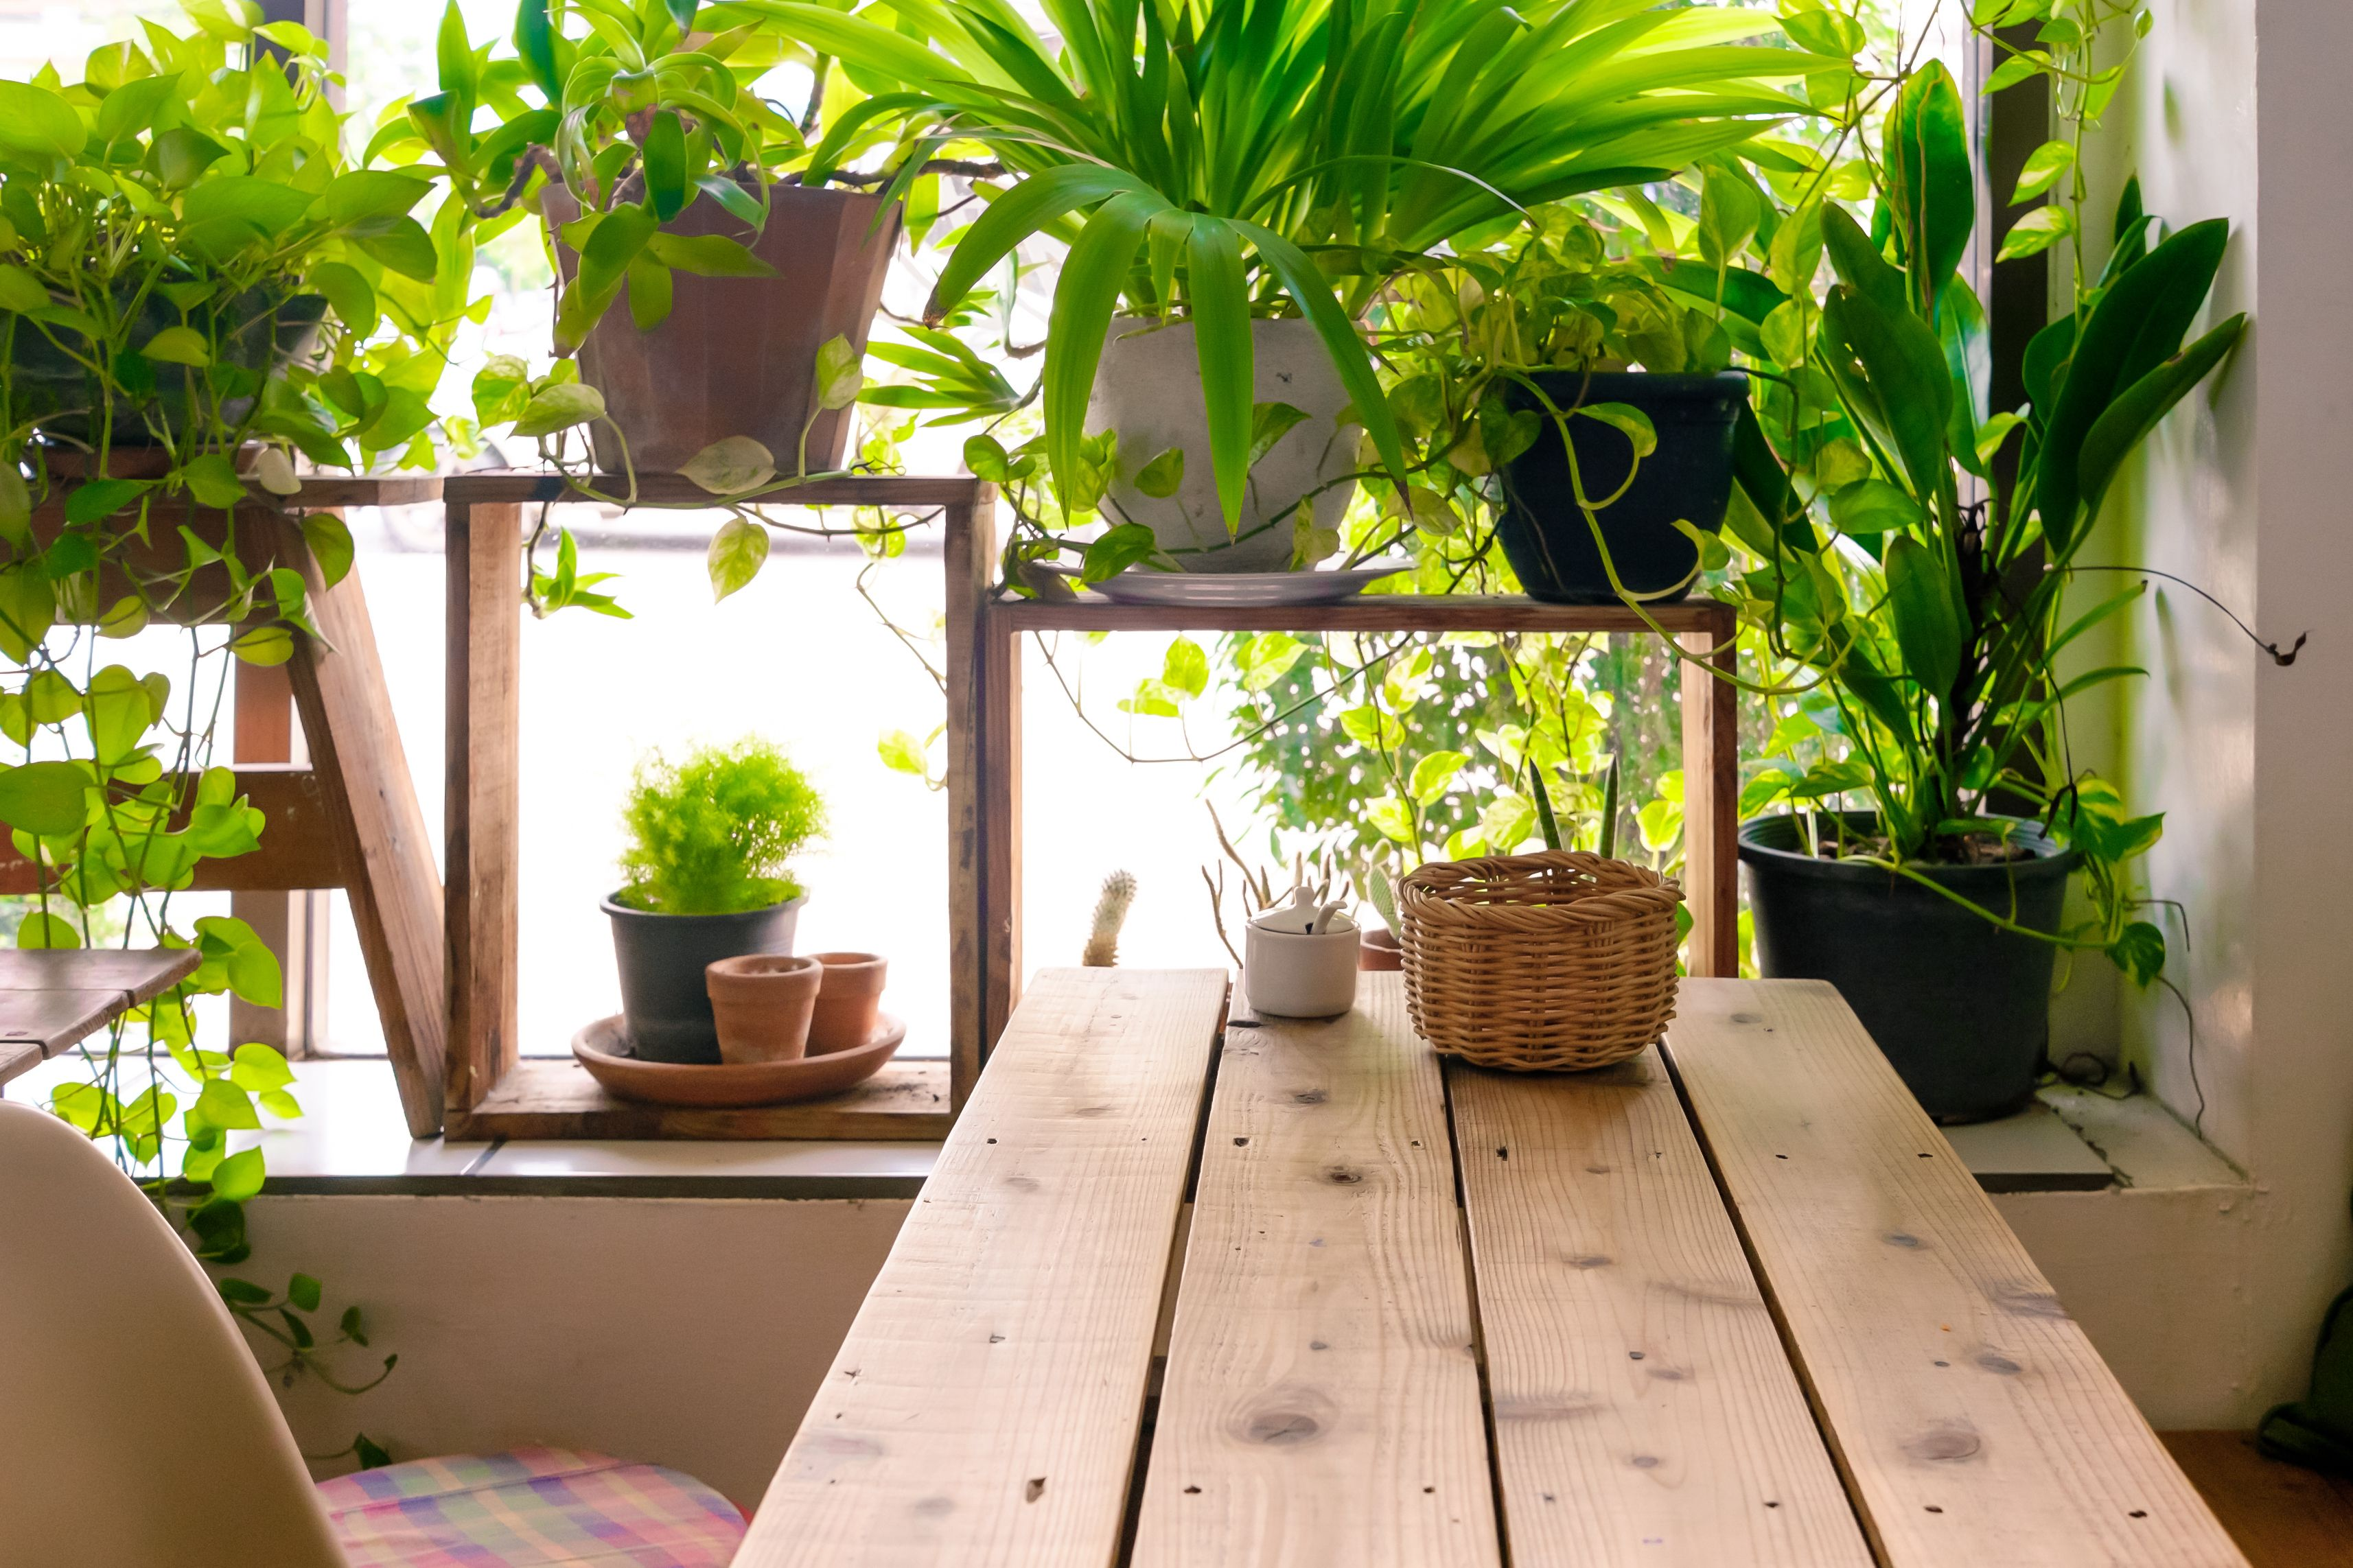 Indoor Plants For The Office 7 Best Indoor Plants For Air Quality Air Purifying Houseplants